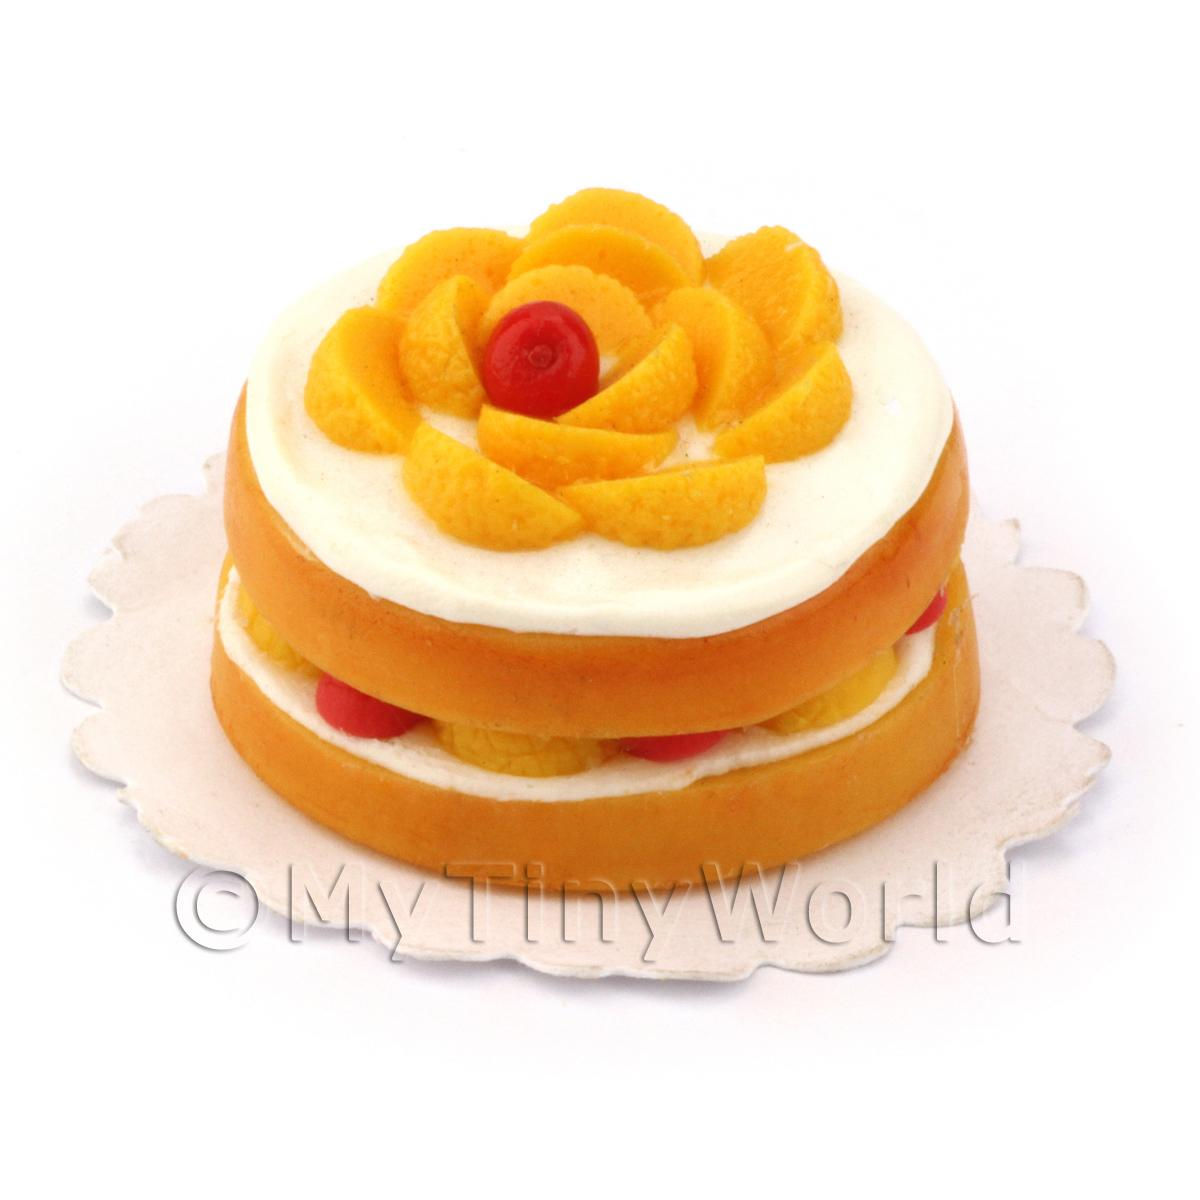 Dolls House Miniature Victoria Sponge Cake  With Mixed Fruit